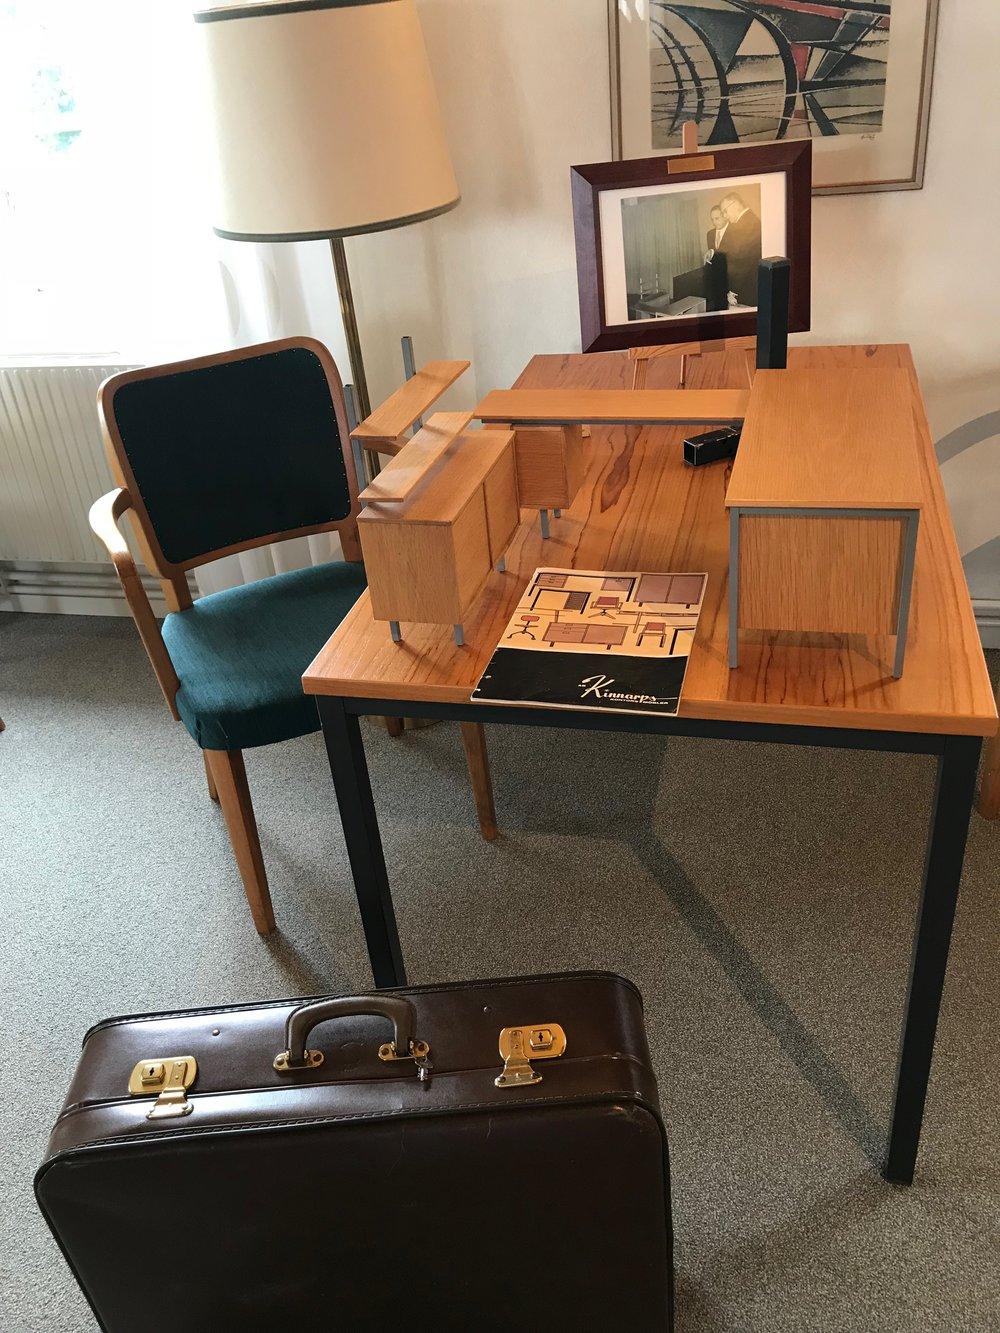 The miniature version of furniture that was made and travelled in a suitcase so that Kinnarp's founder Jarl could take them along when meeting prospective clients.